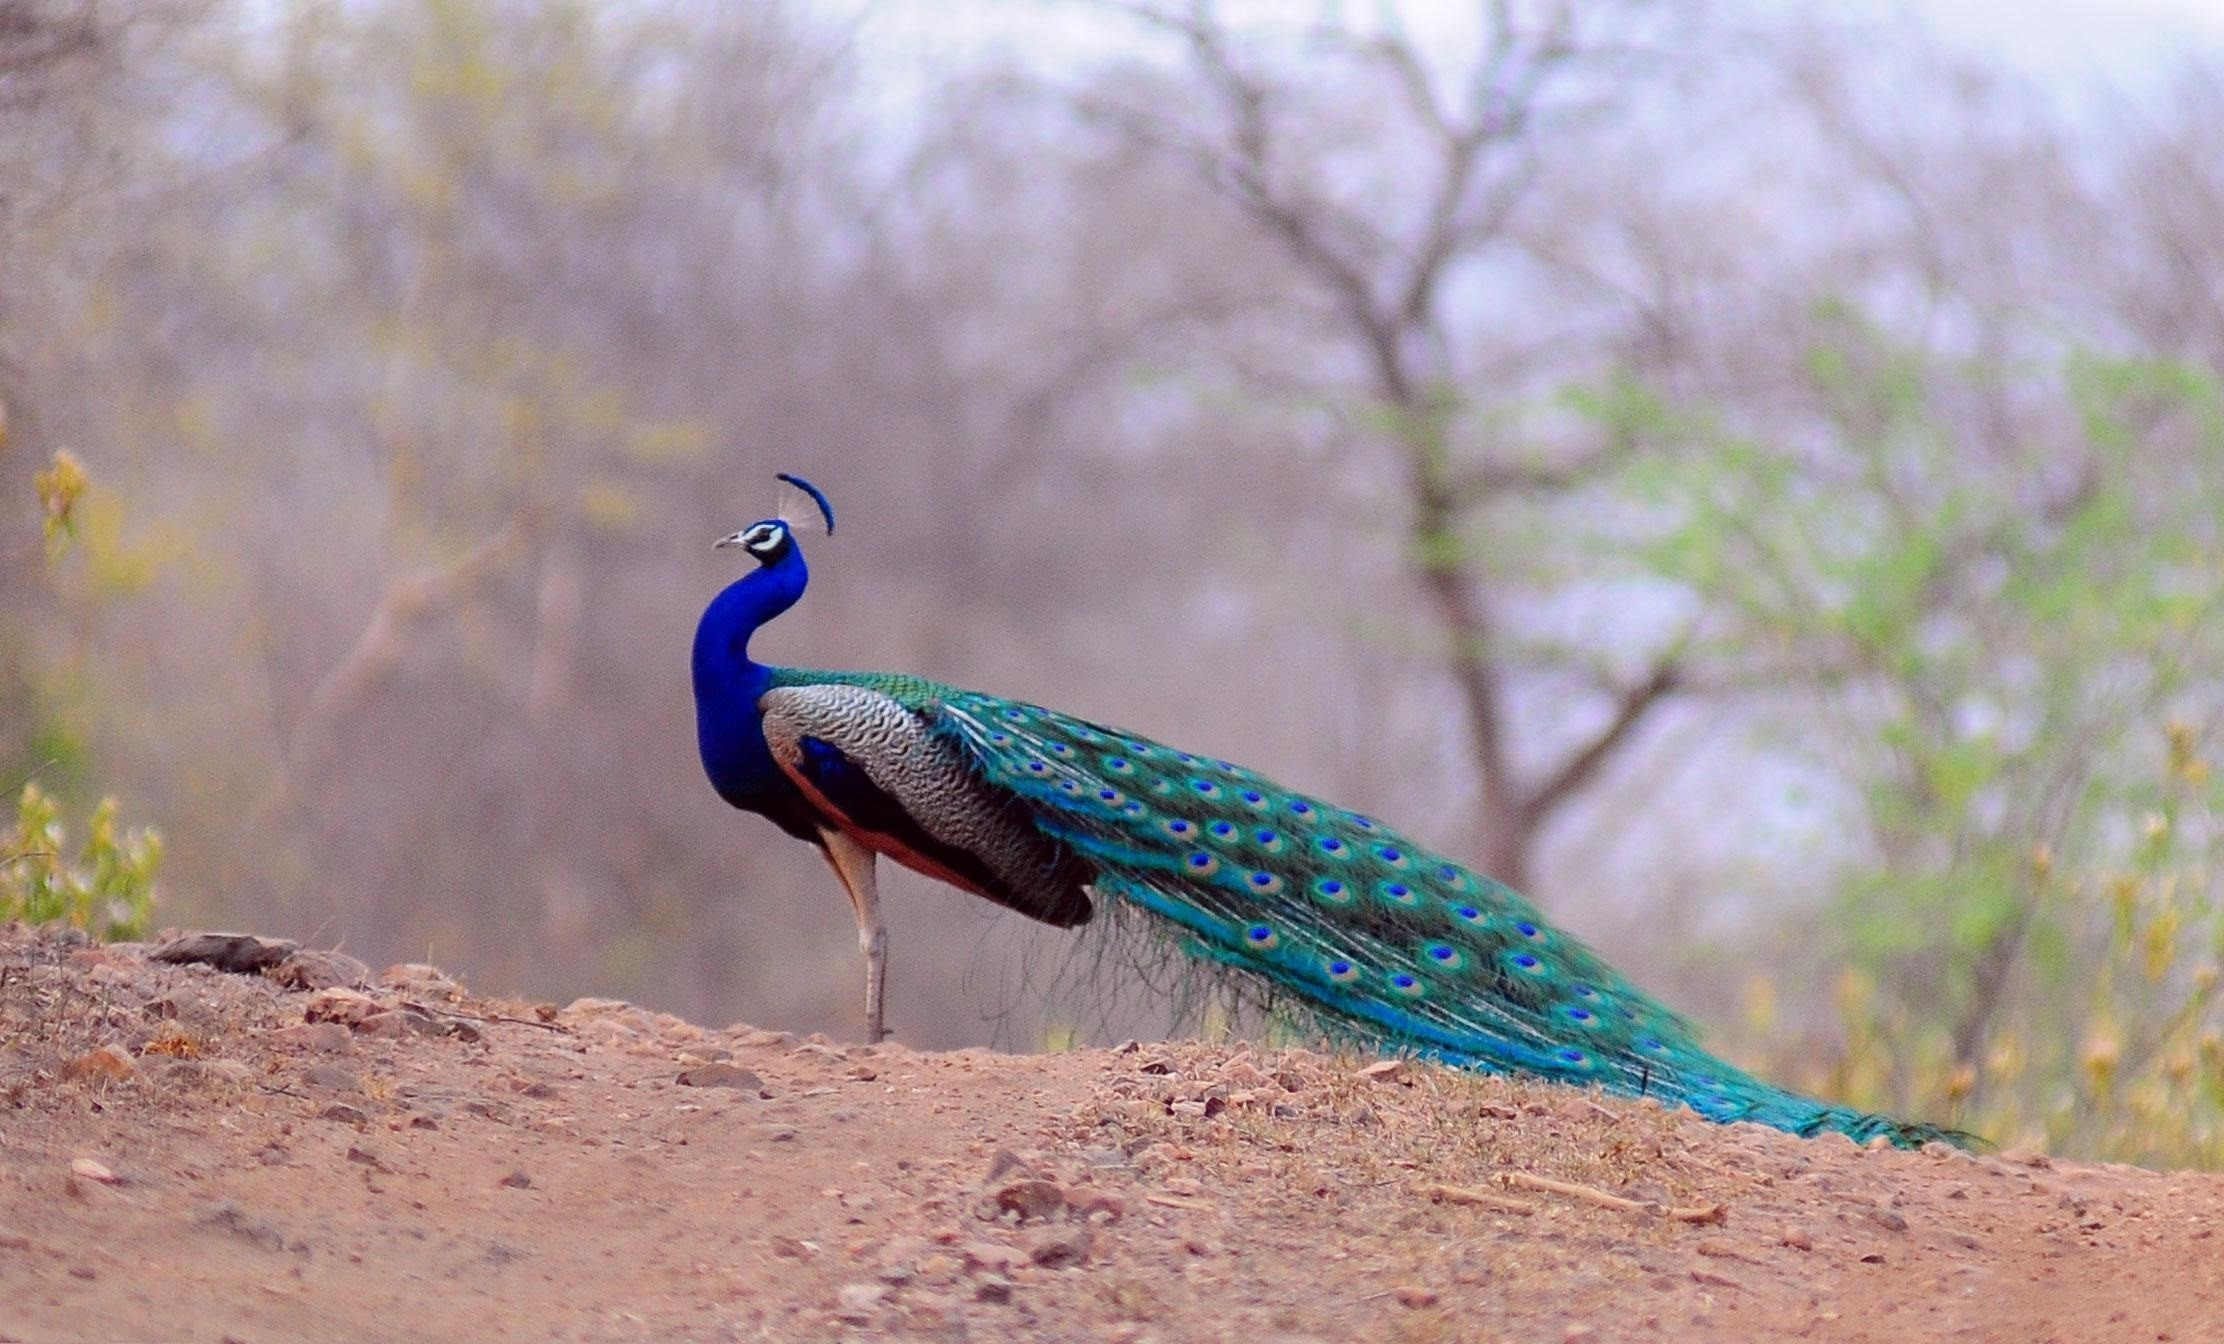 Wallpapers Of Peacock Feathers HD 2018 ·① WallpaperTag